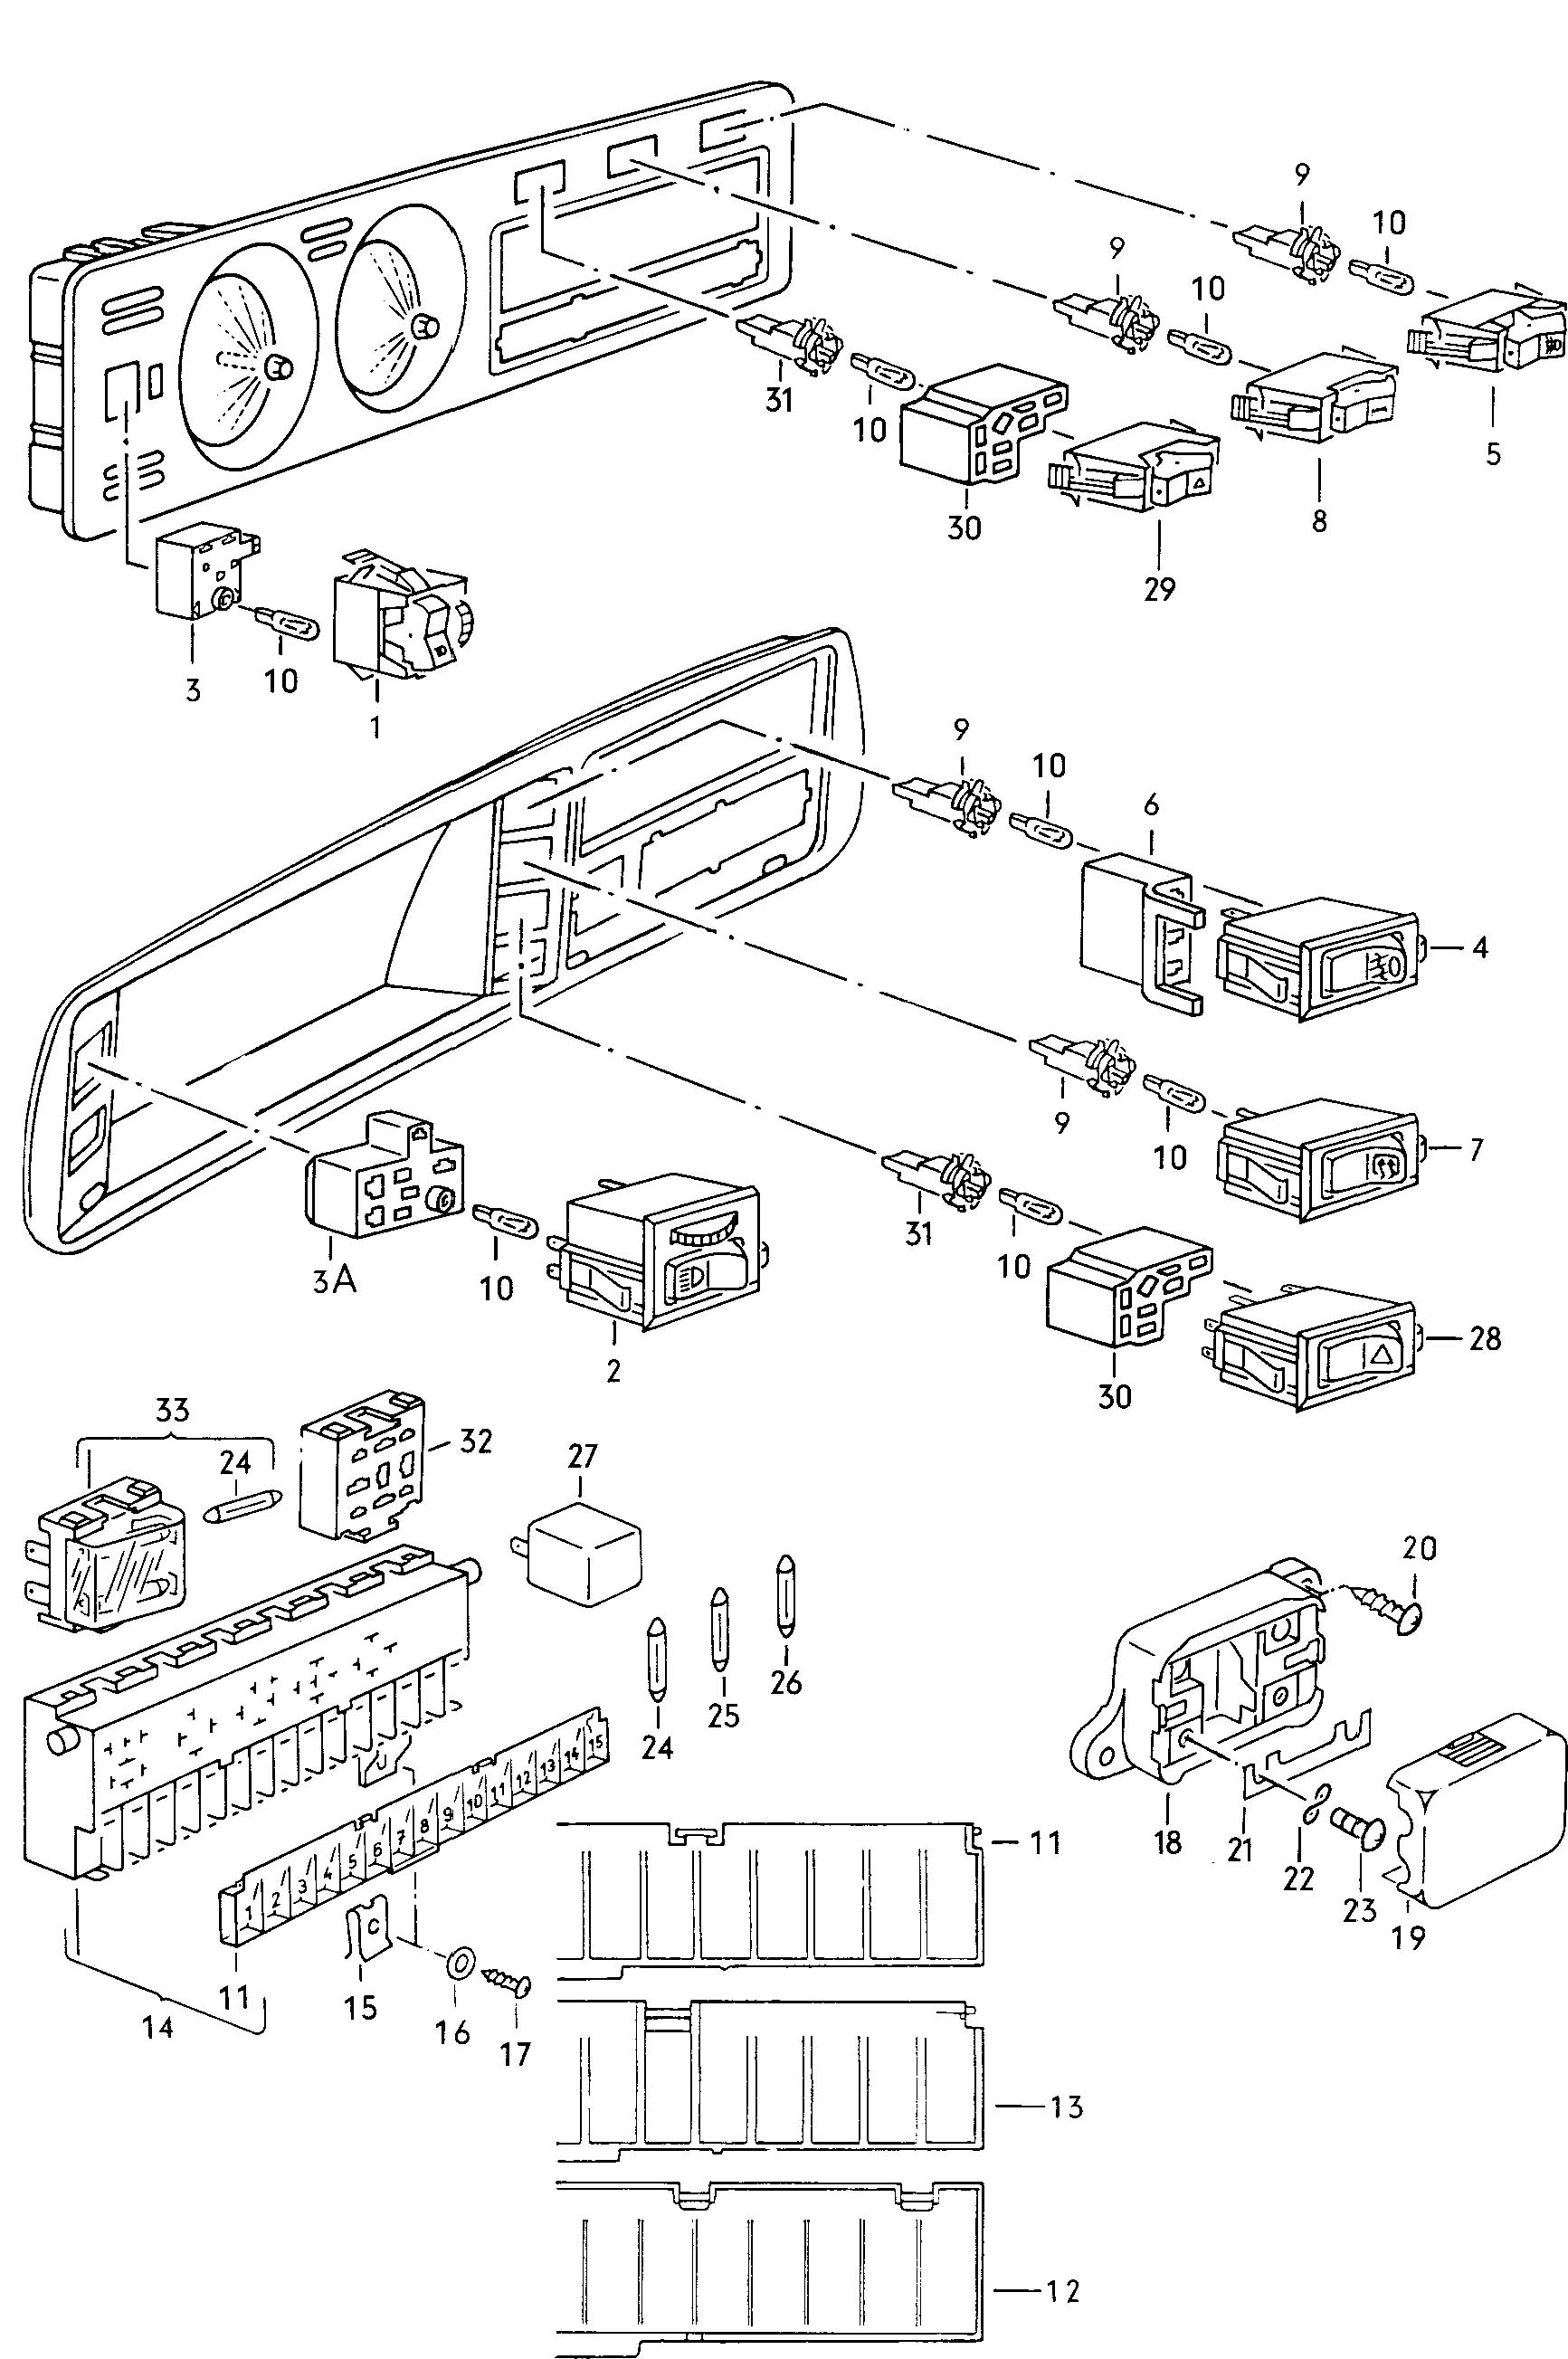 2014 tiguan fuse box diagram